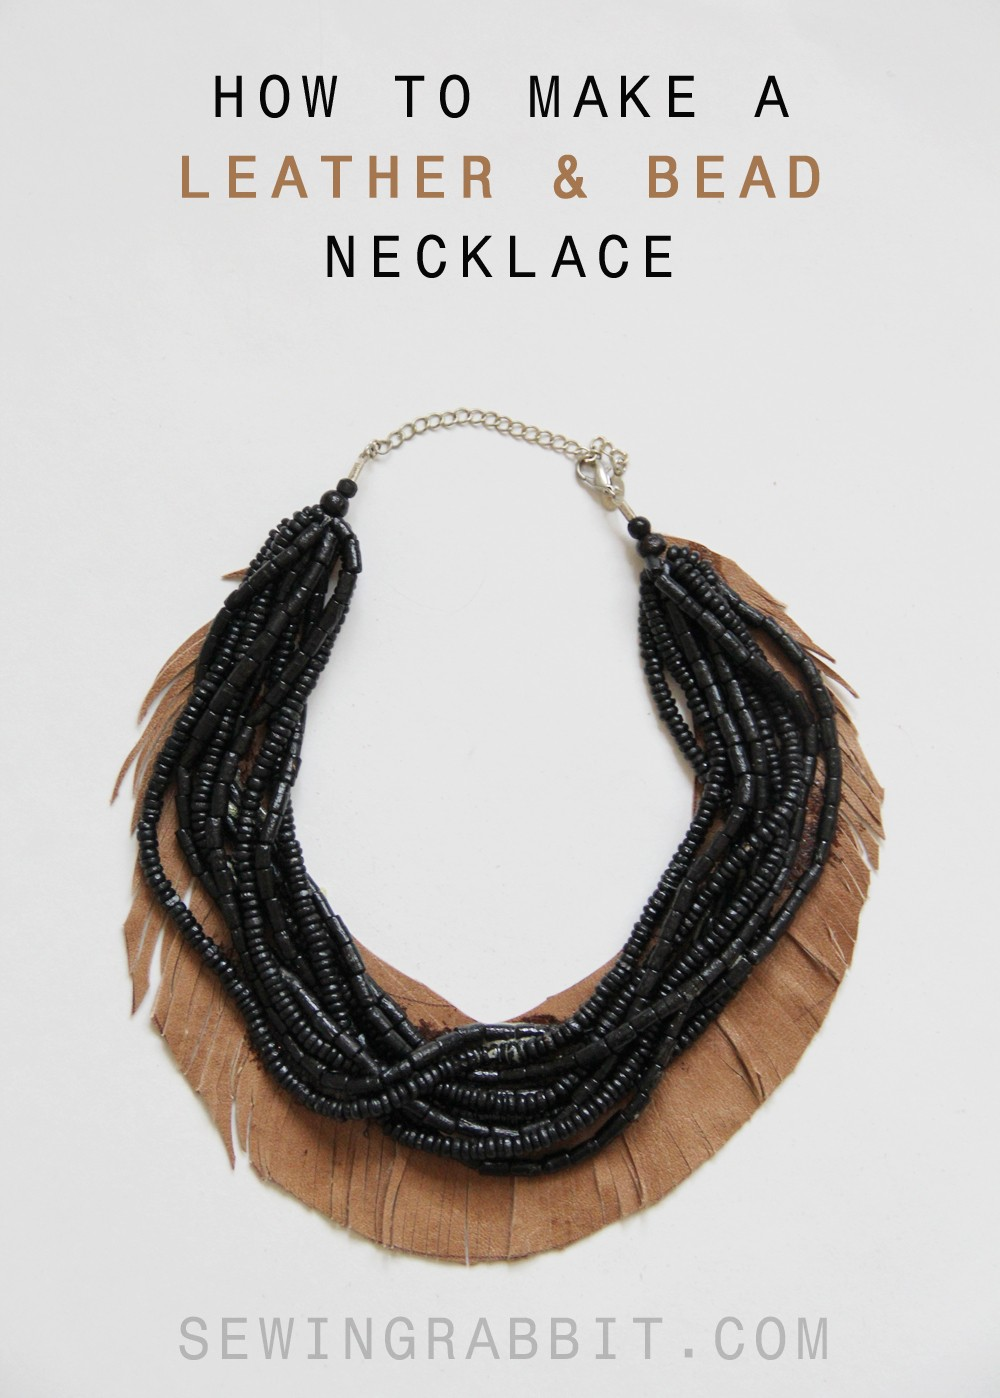 How to Make a Leather & Bead Fringe Necklace - easy Craft DIY